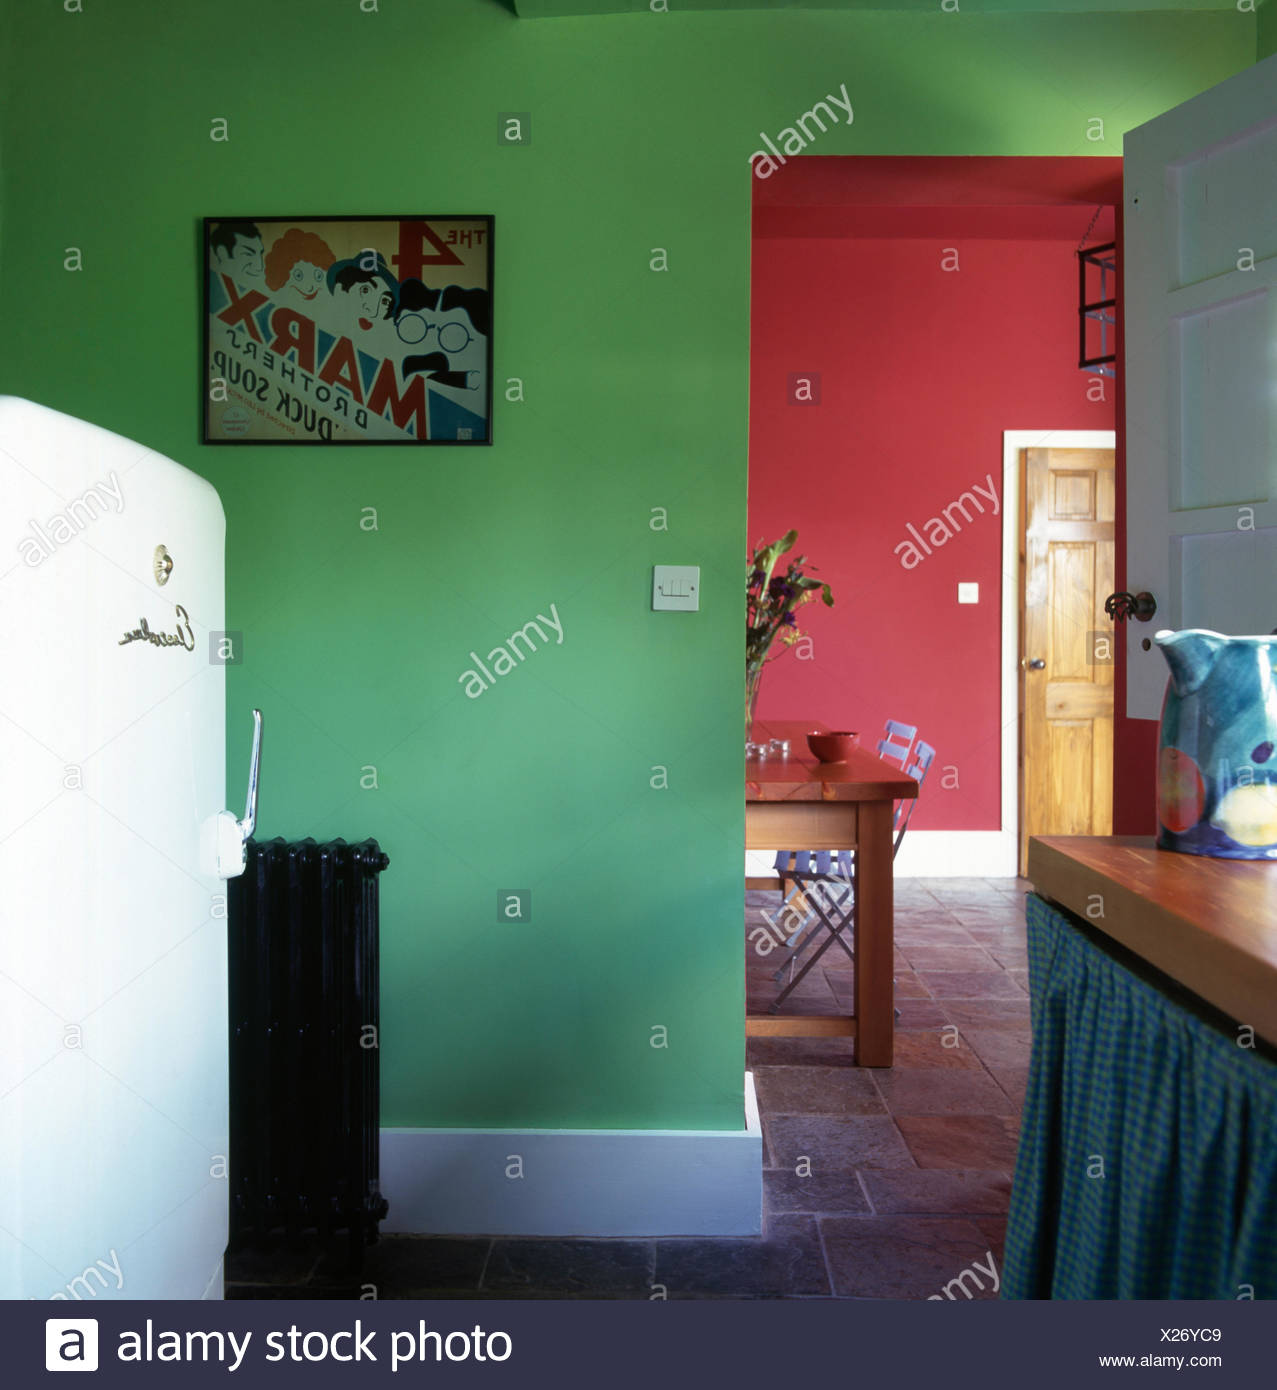 Large fridge in a bright green kitchen with doorway to a red dining room - Stock Image